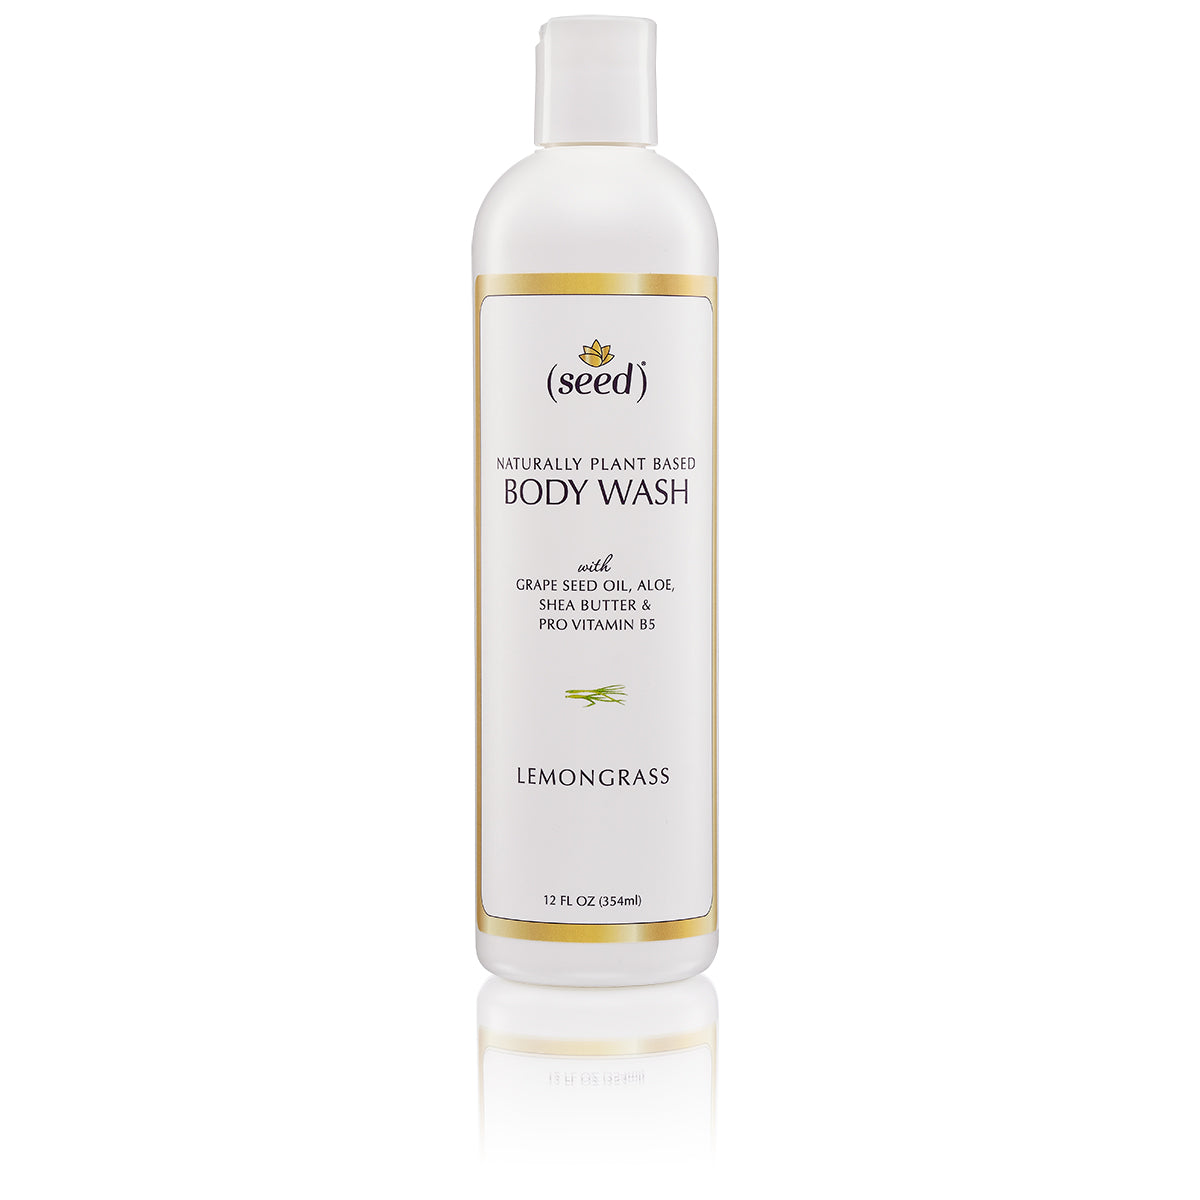 Seed Lemongrass Body Wash features grape seed oil, aloe, shea butter, provitamin b5, and Lemongrass essential oil